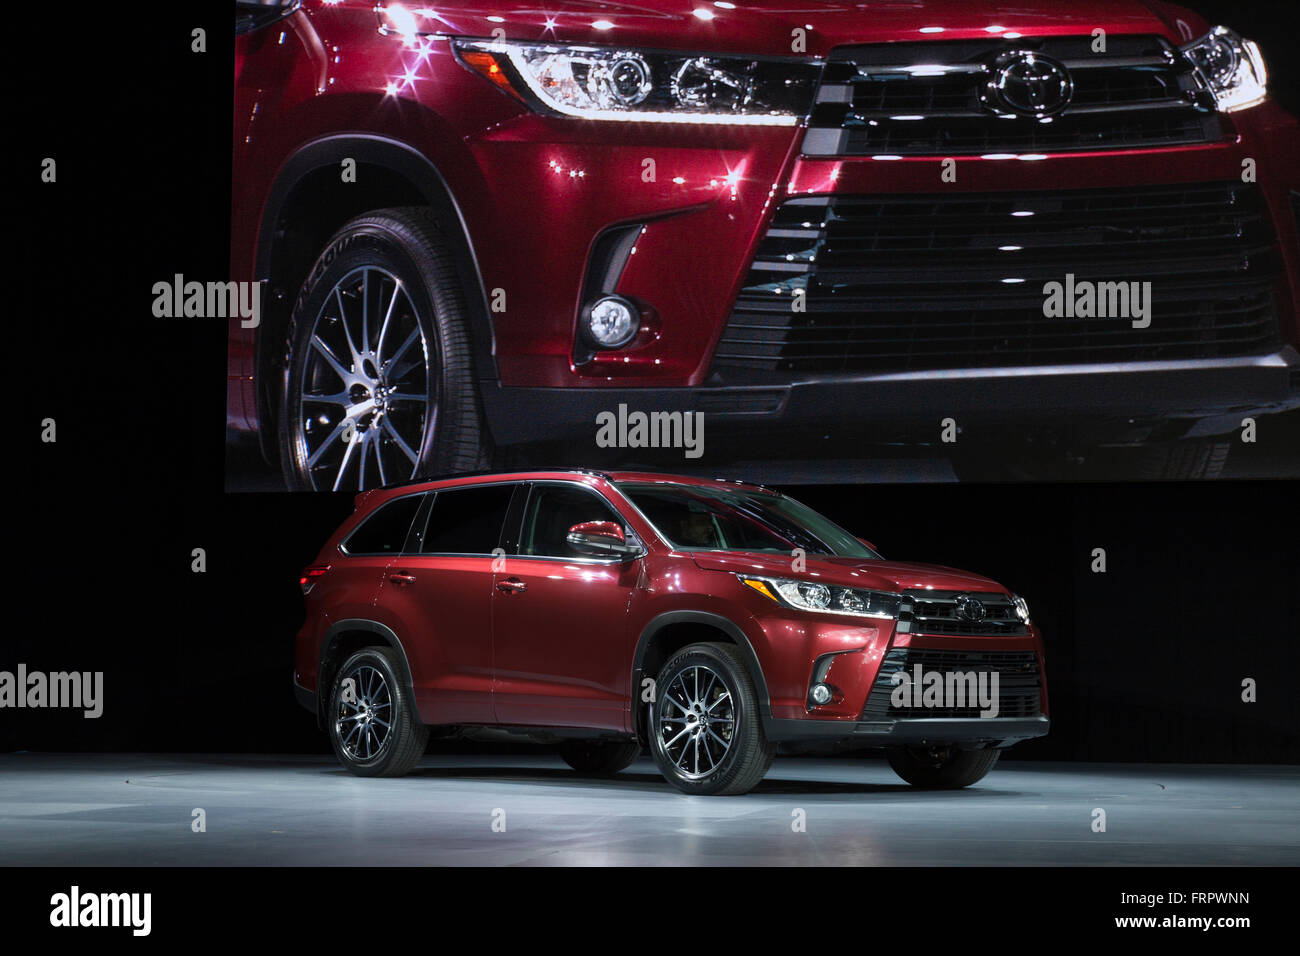 new york usa 23rd march 2016 unveiling toyota suv highlander 2017 stock photo royalty free. Black Bedroom Furniture Sets. Home Design Ideas